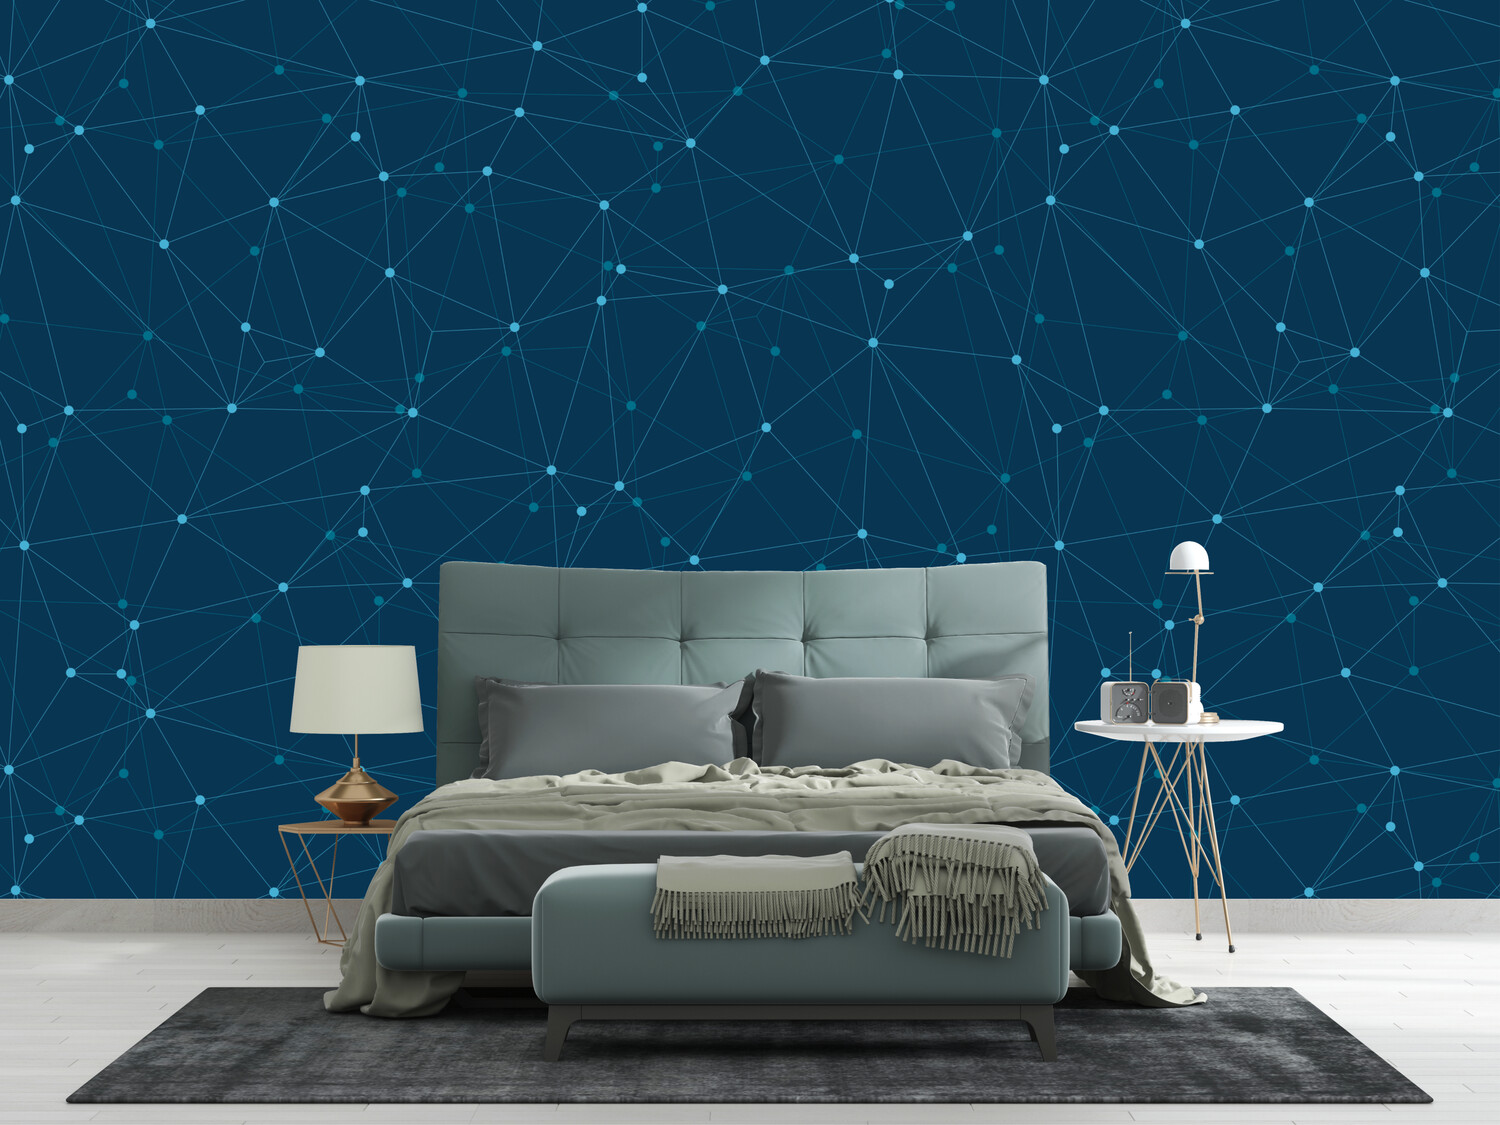 BLUE CONSTELLATION | Vinyl Wall Wrap for Any Room | Removable Vinyl Wallpaper